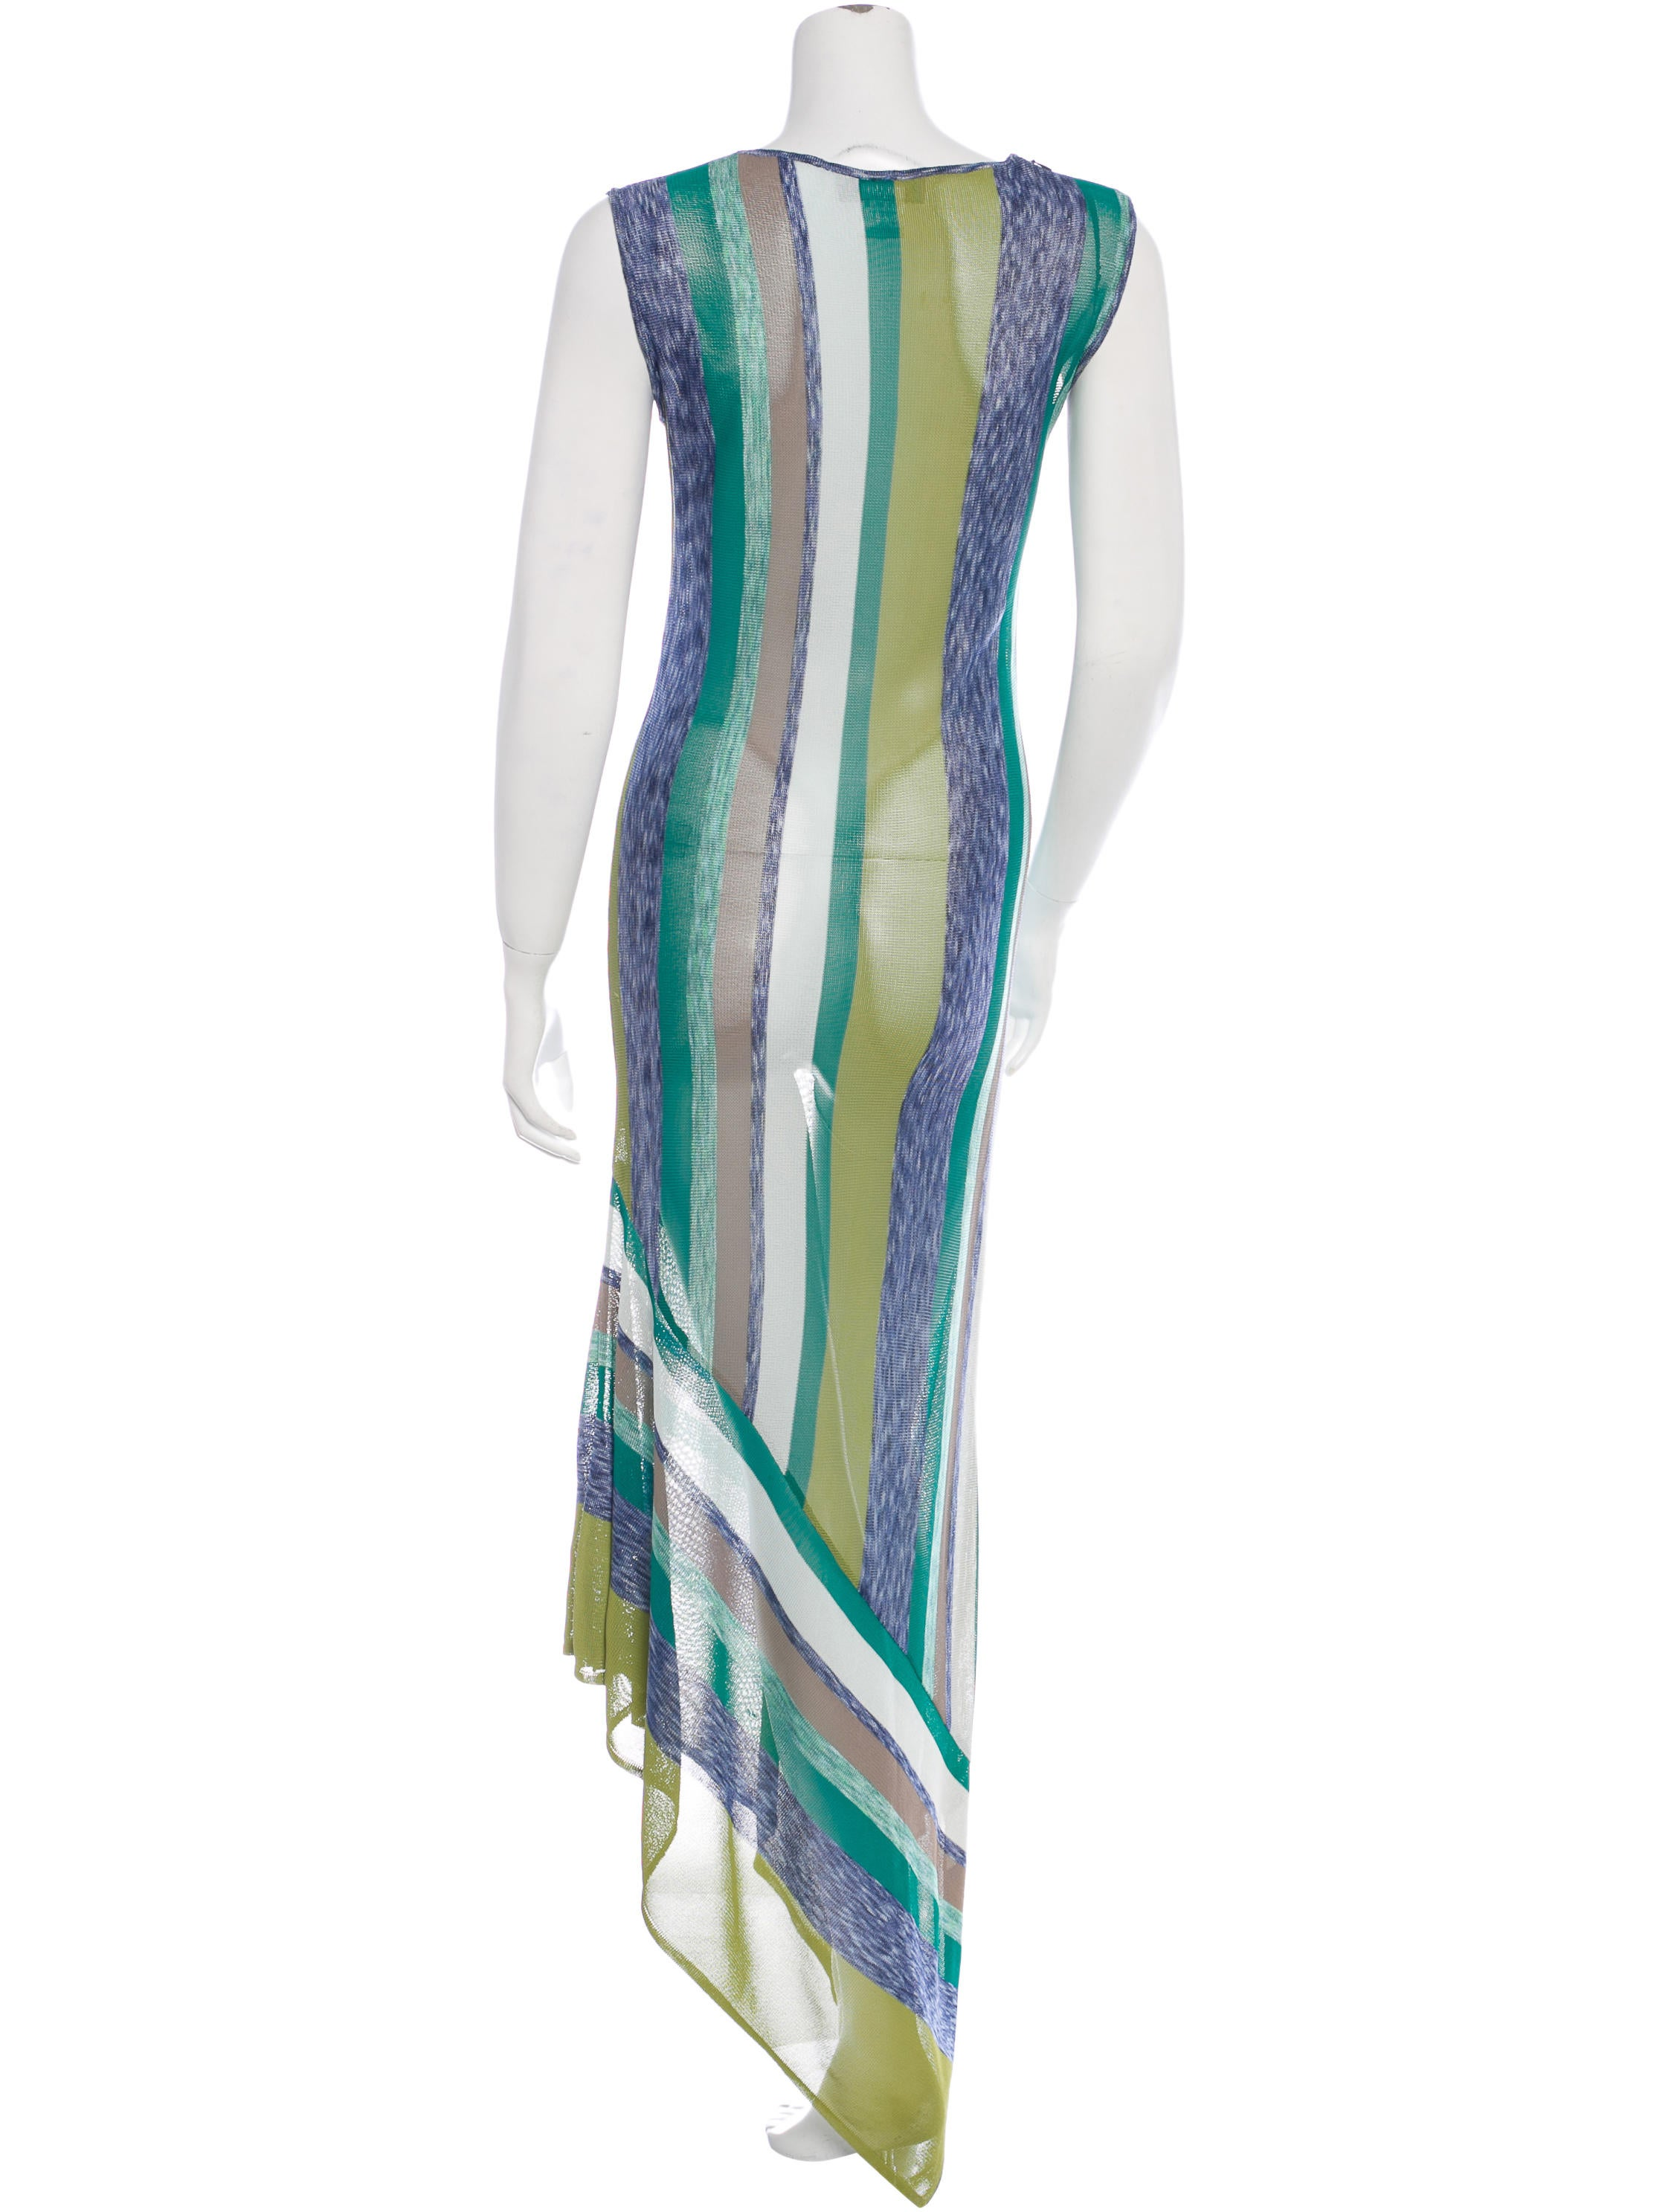 Knit Maxi Dress Pattern : Missoni Knit Maxi Dress - Clothing - MIS33990 The RealReal